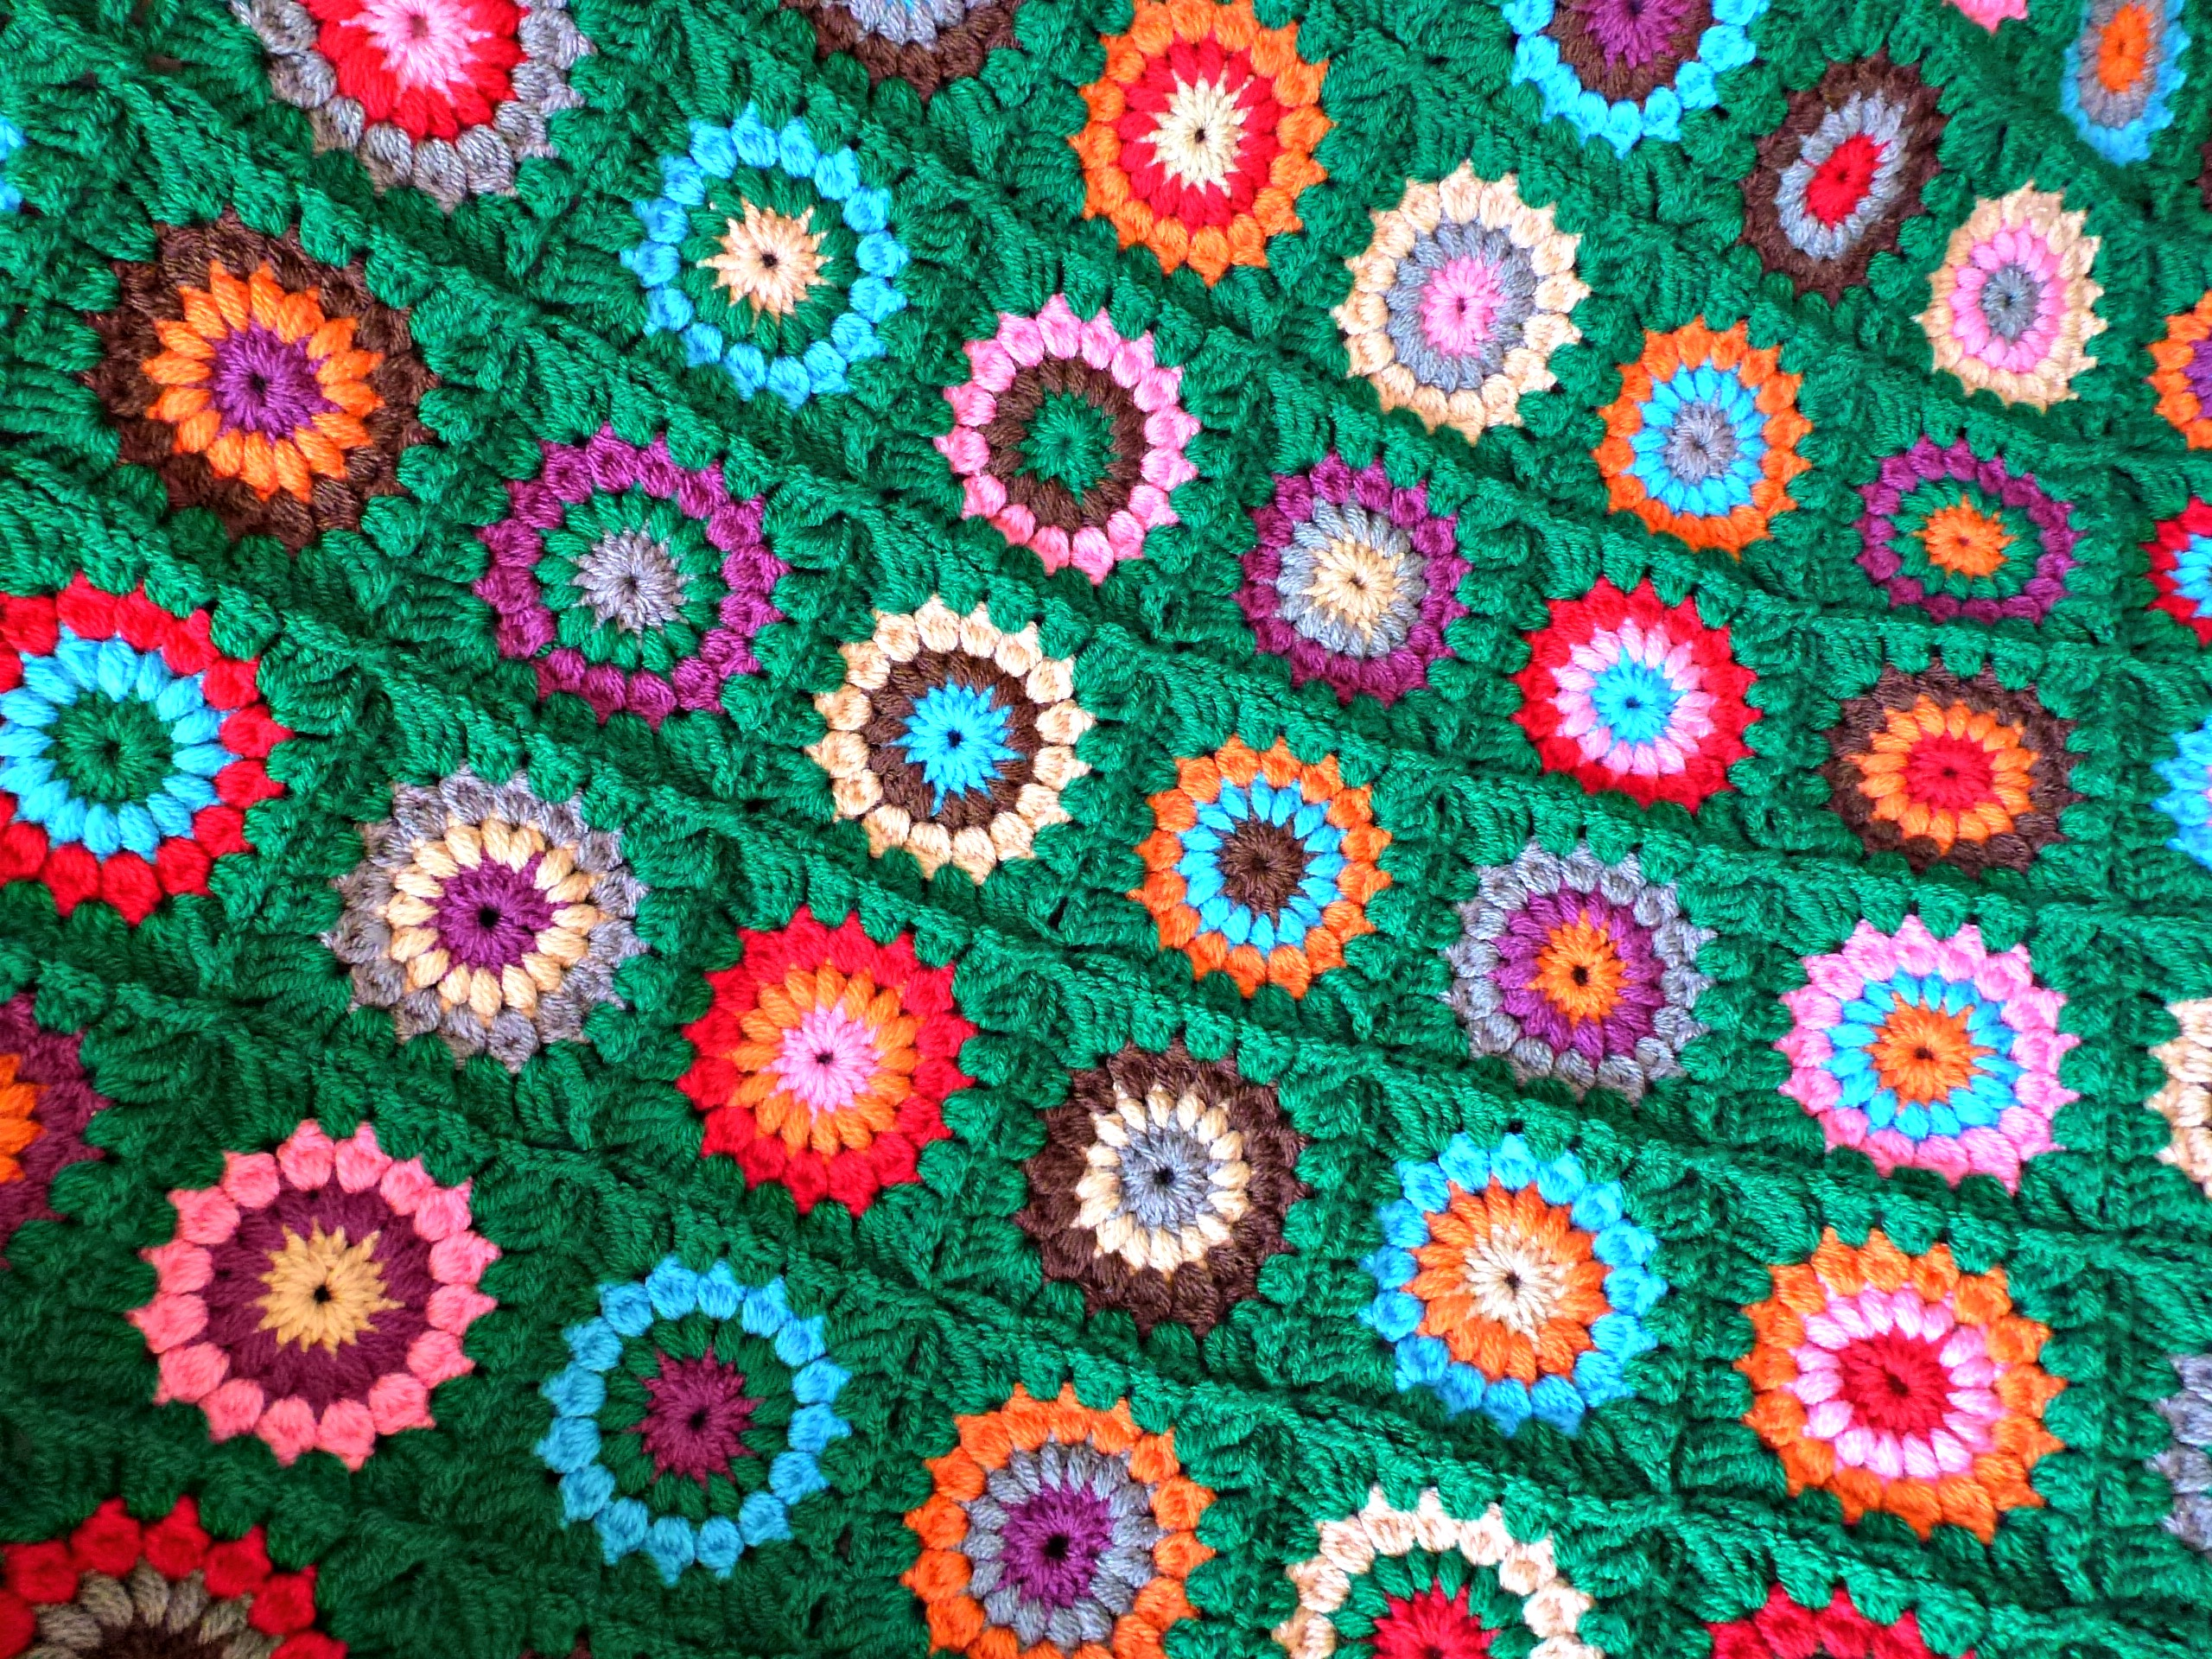 The blanket that took a very long time to make – Zeens and Roger